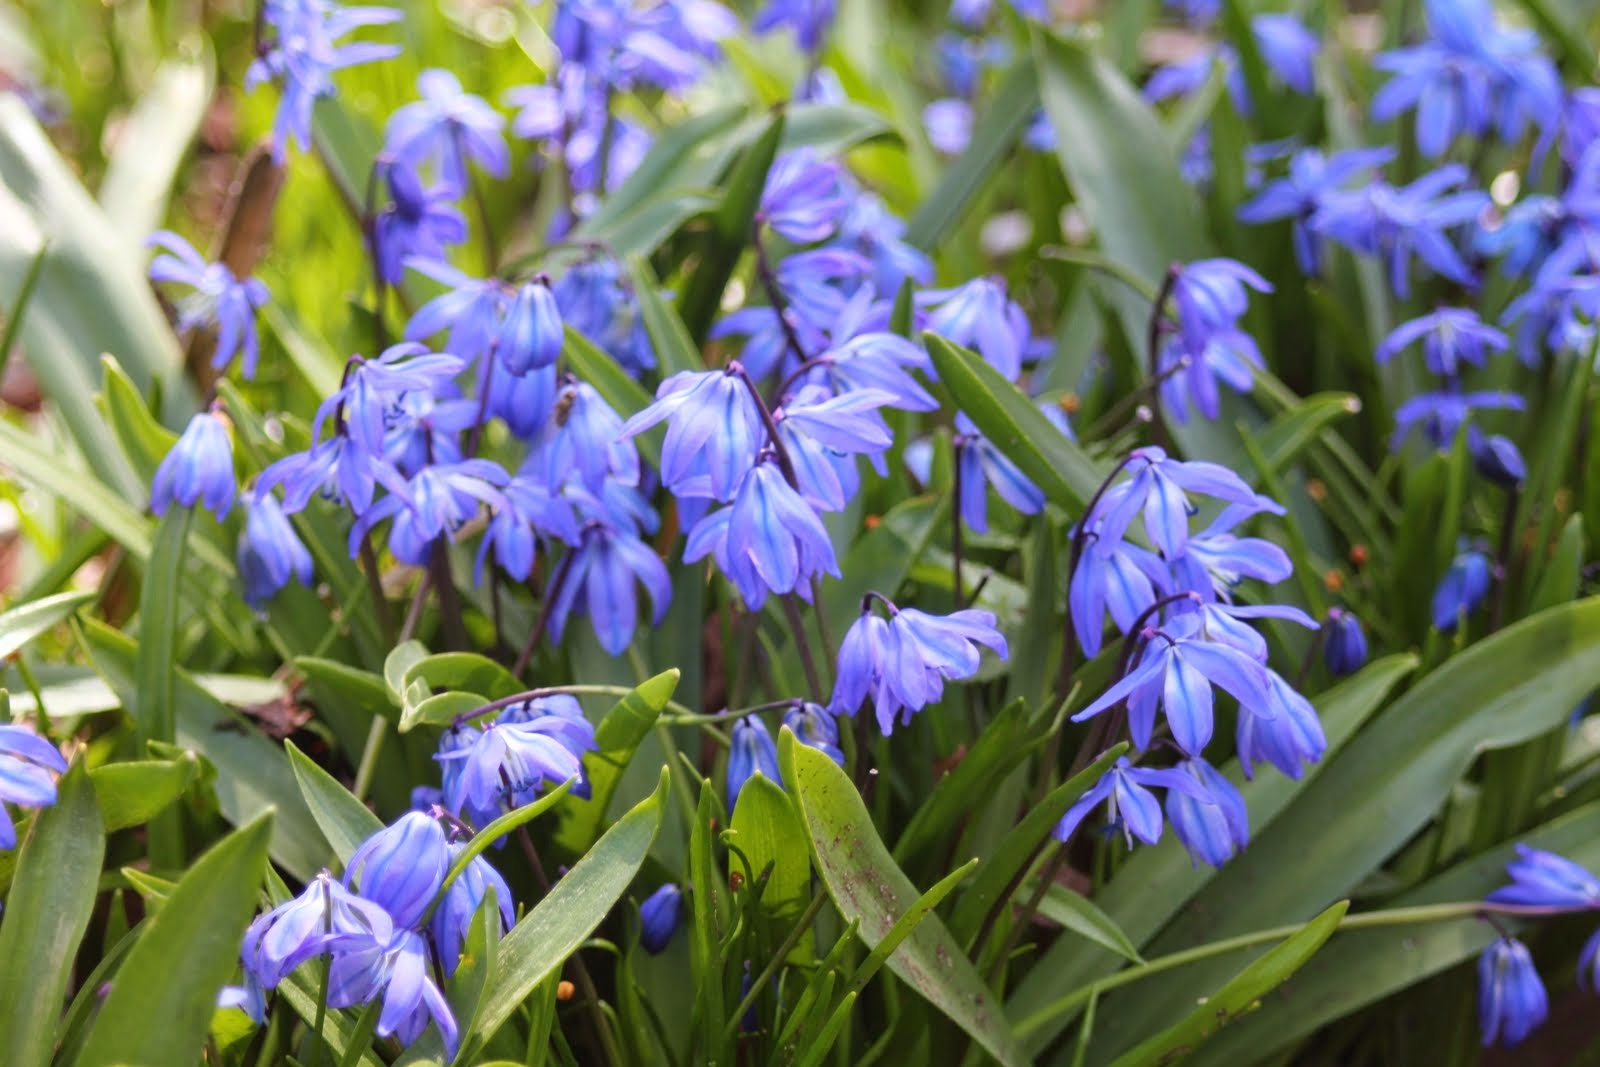 Gardening and gardens little blue spring flowers what are they its six blue petals surround stamens that have thread like filaments and are not clustered together scilla can grow 3 6 inches high and each bulb produces mightylinksfo